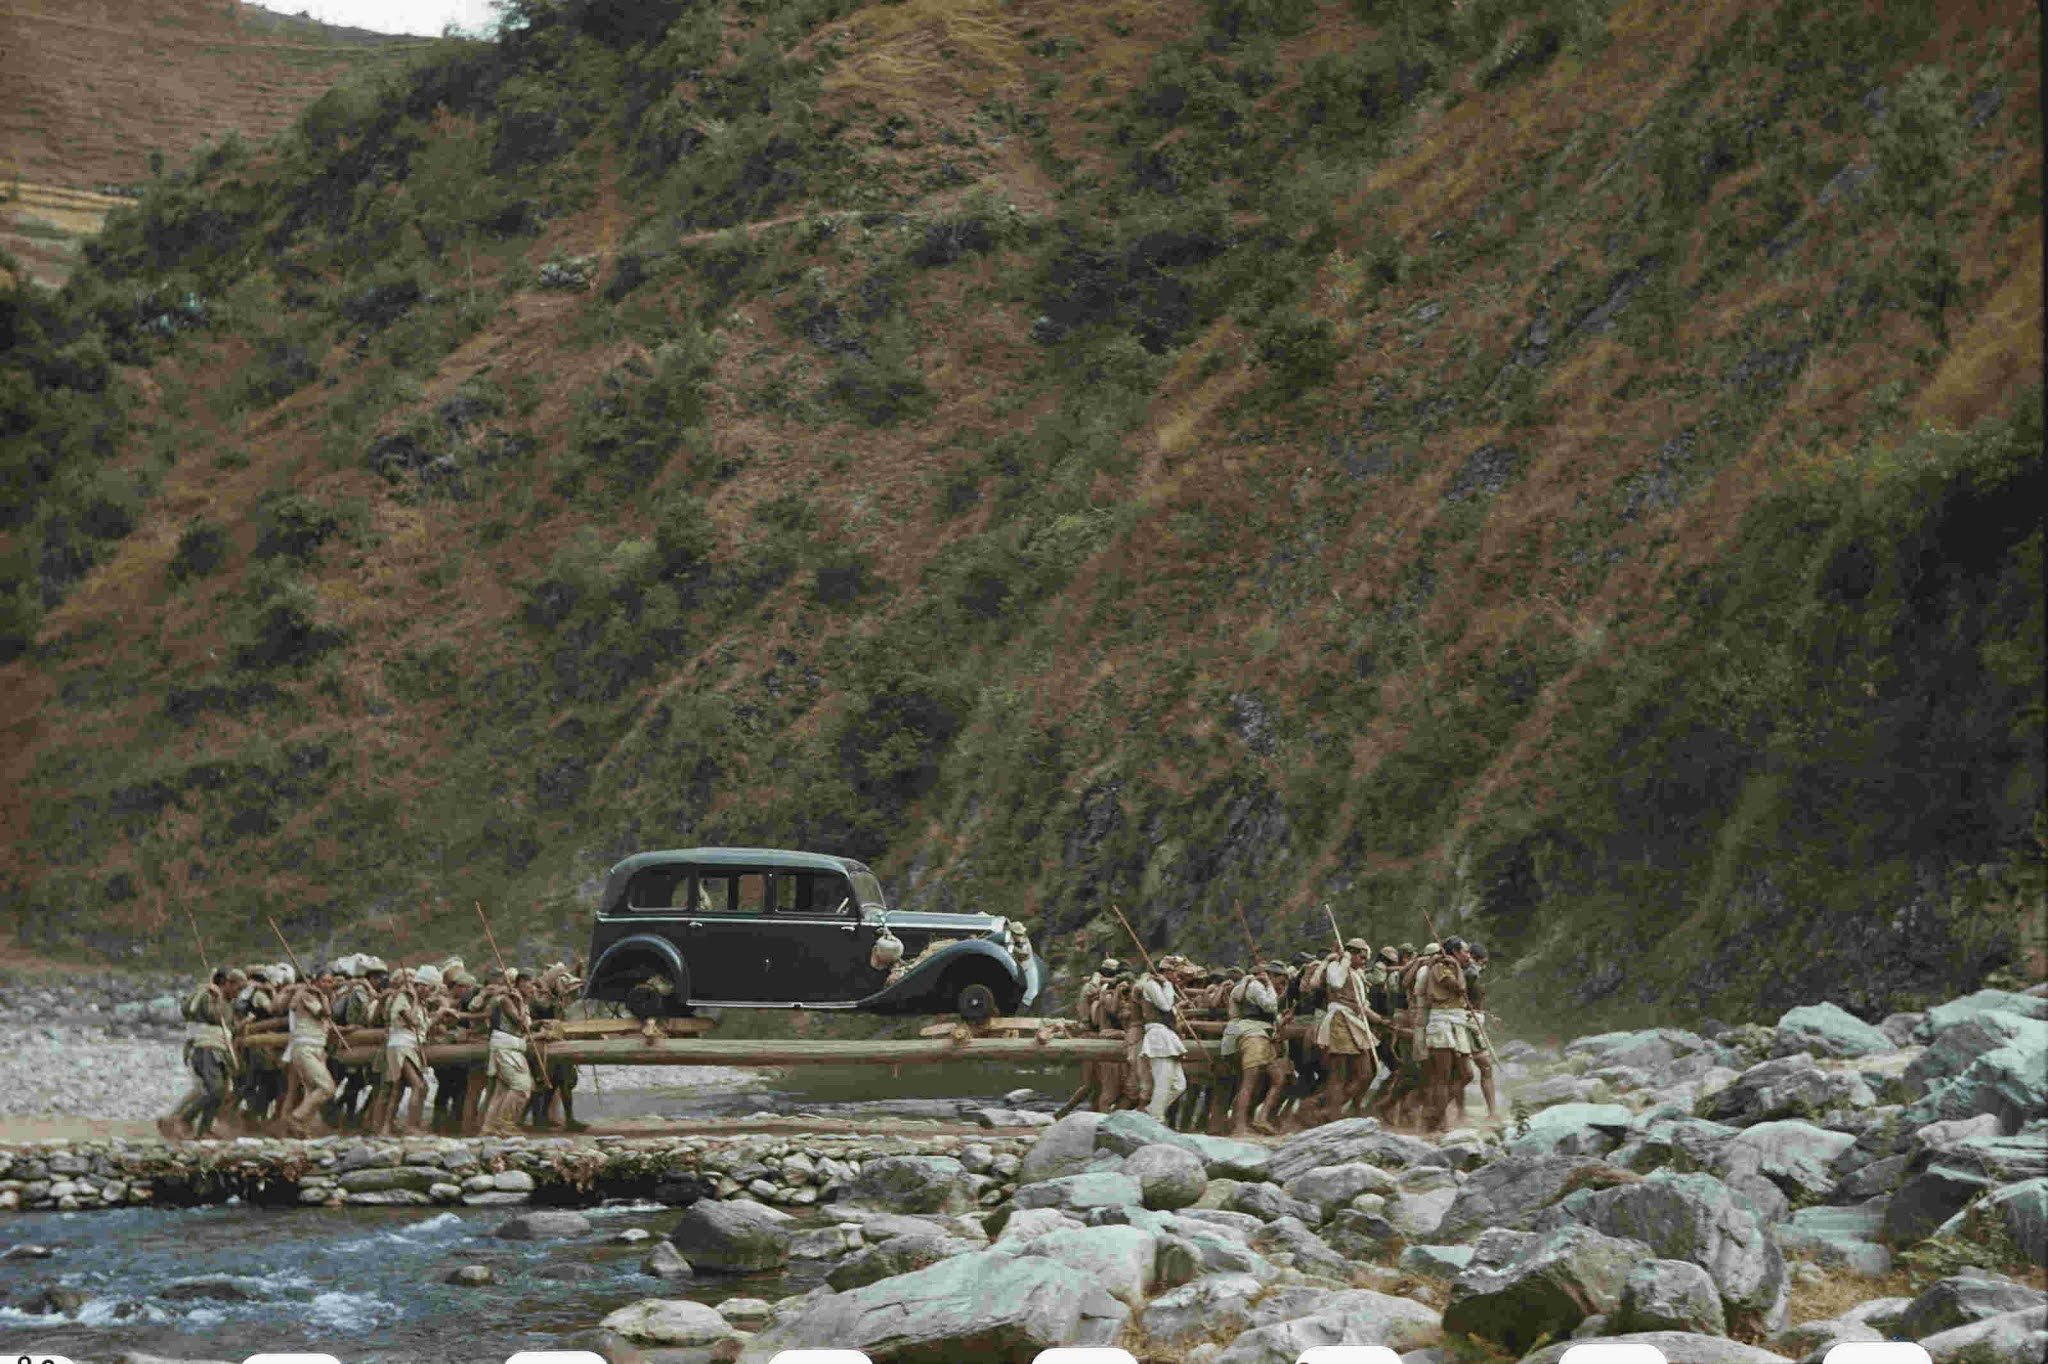 The first car of Nepal